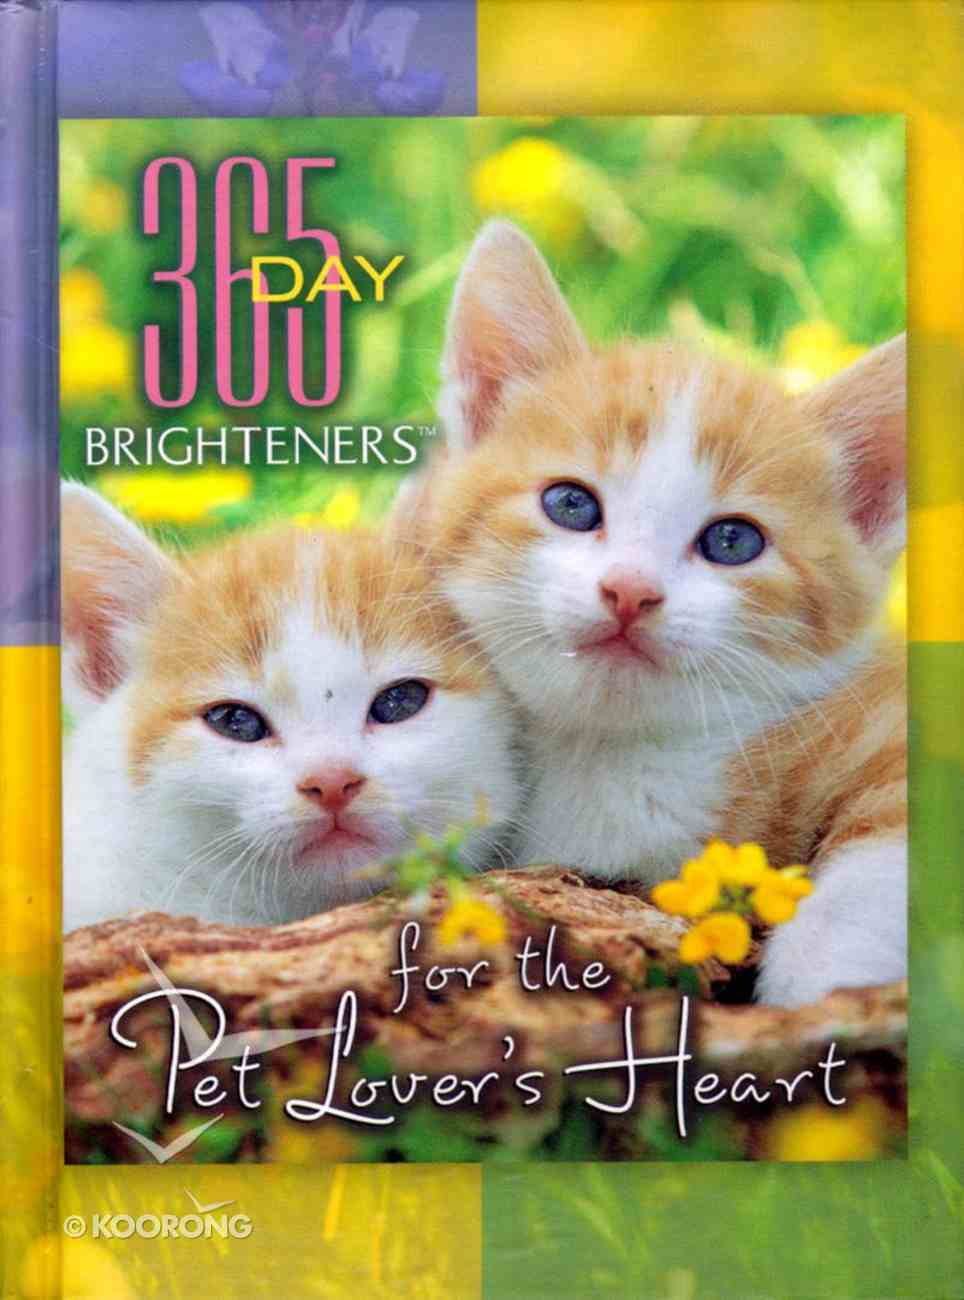 For the Pet Lover's Heart (365 Day Brighteners Series) Hardback